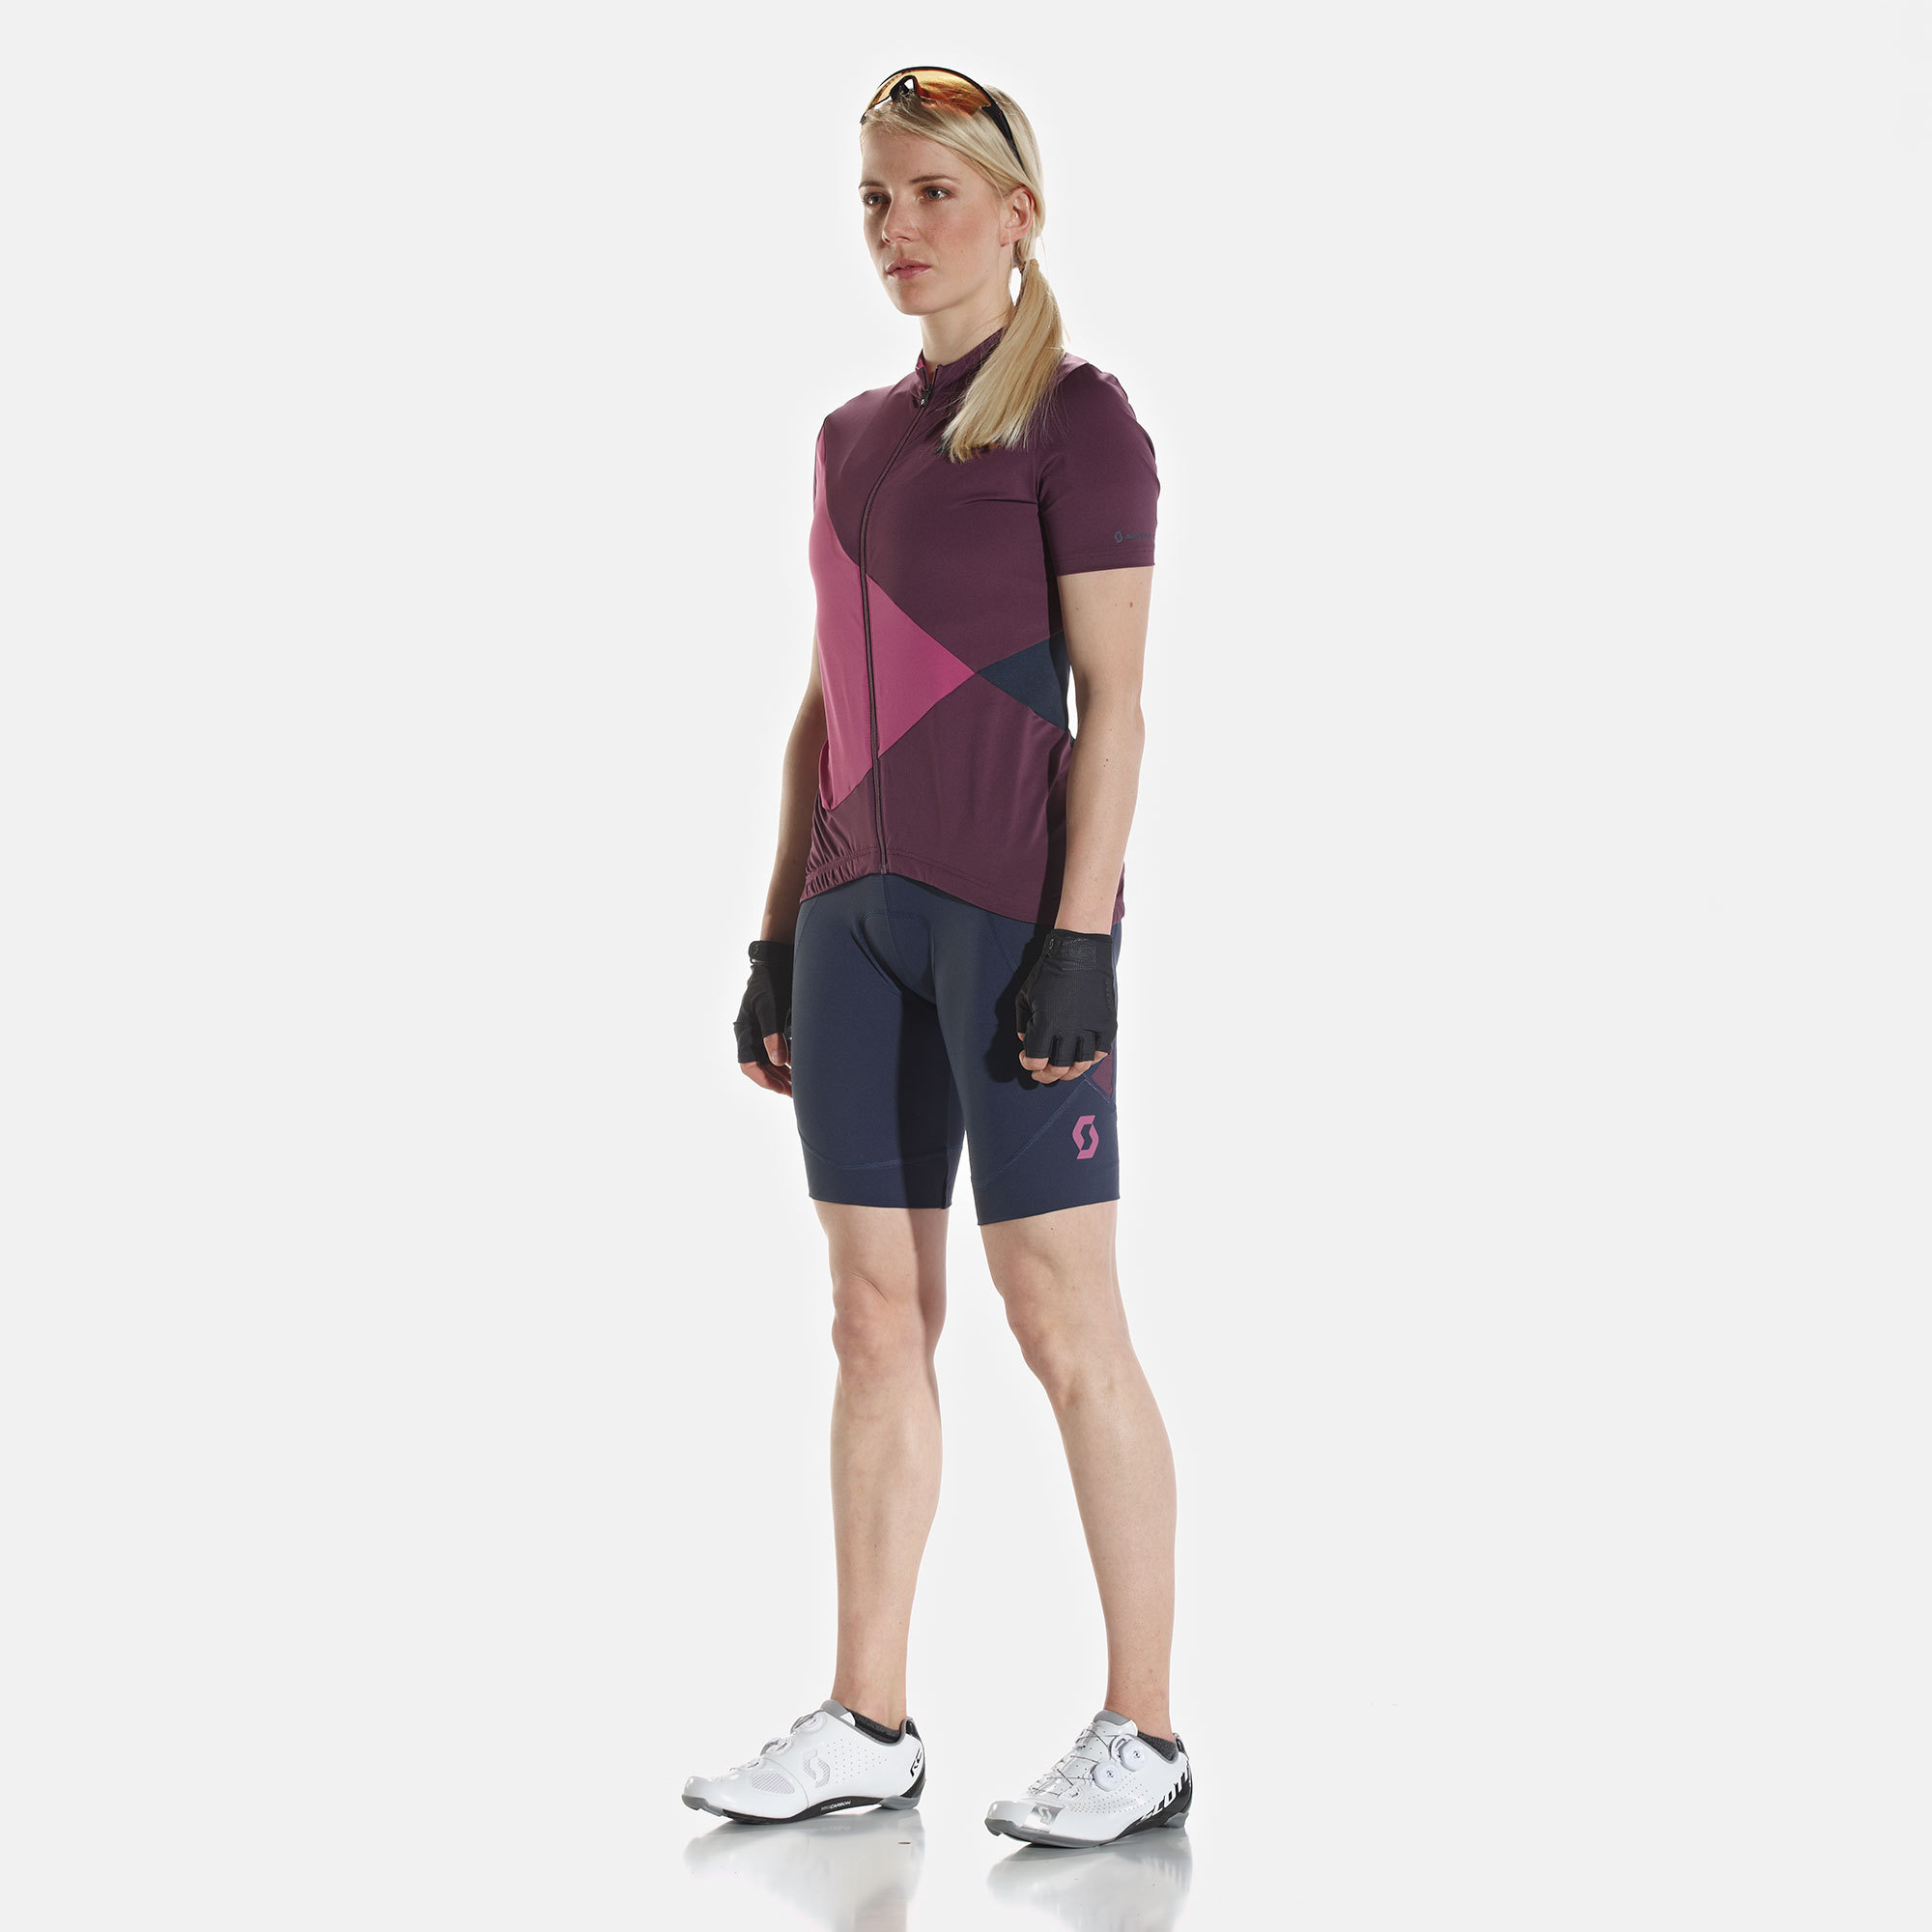 SCOTT Endurance 10 s/sl Damen Shirt